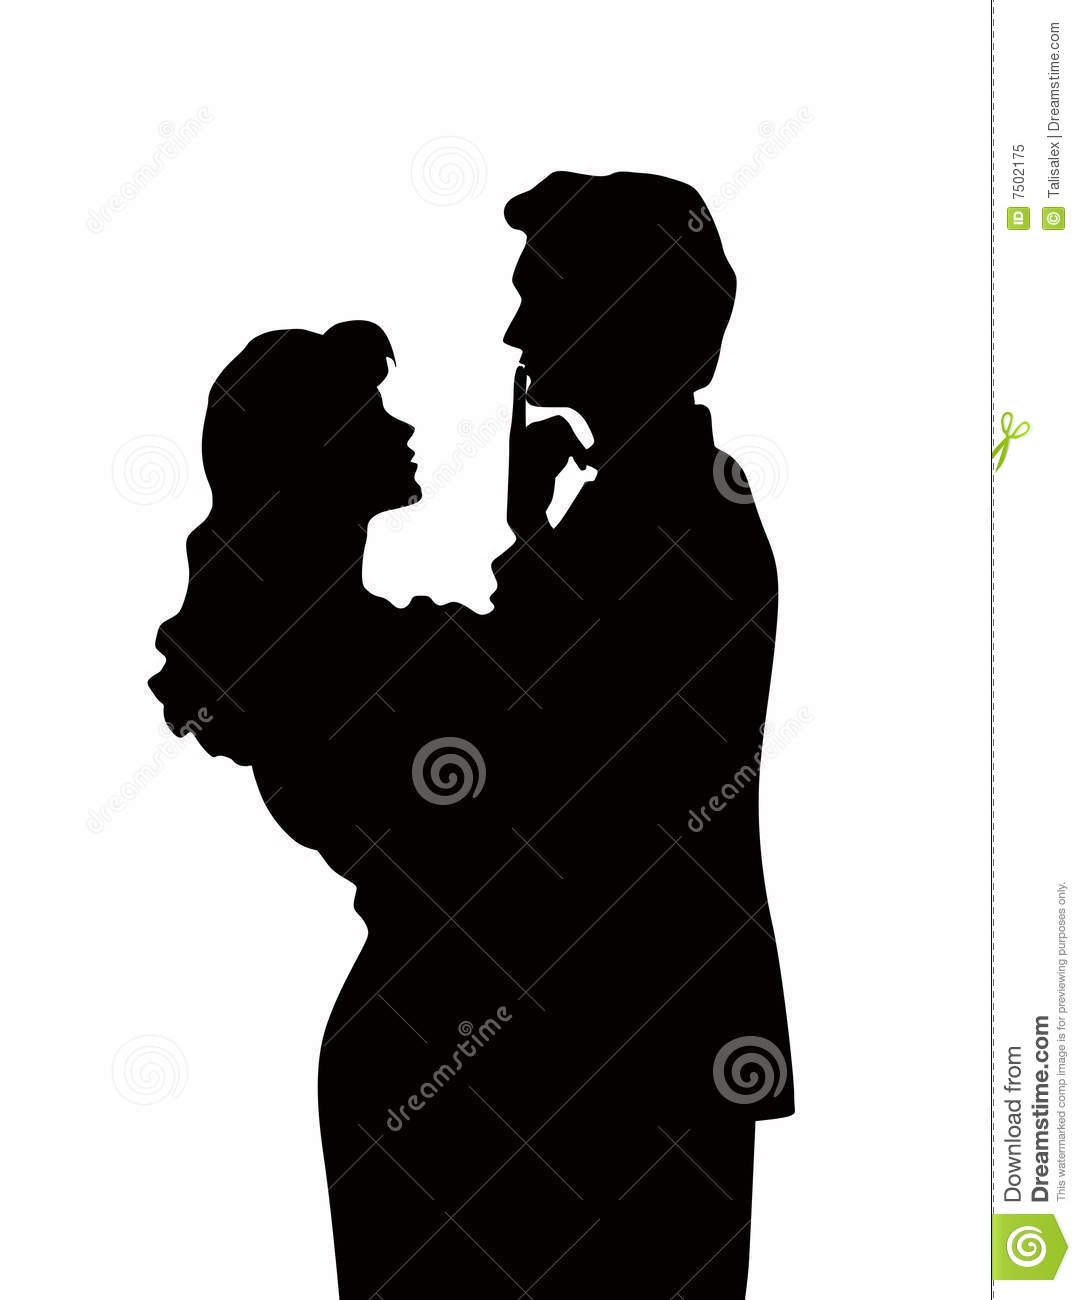 Things, speaks) Husband and wife silhouette apologise, but